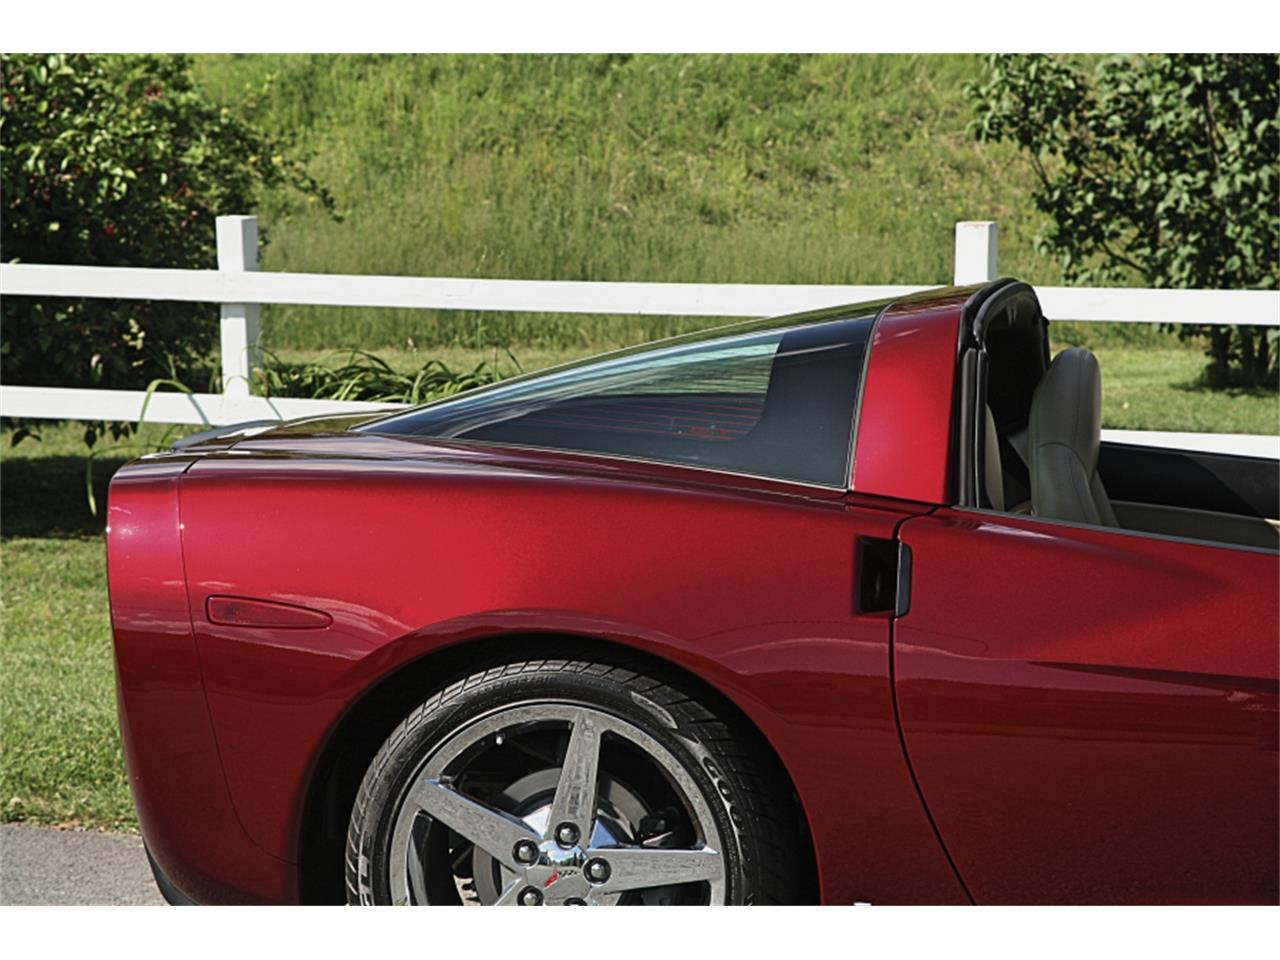 Large Picture of 2007 Corvette located in OLD FORGE Pennsylvania - QD4G